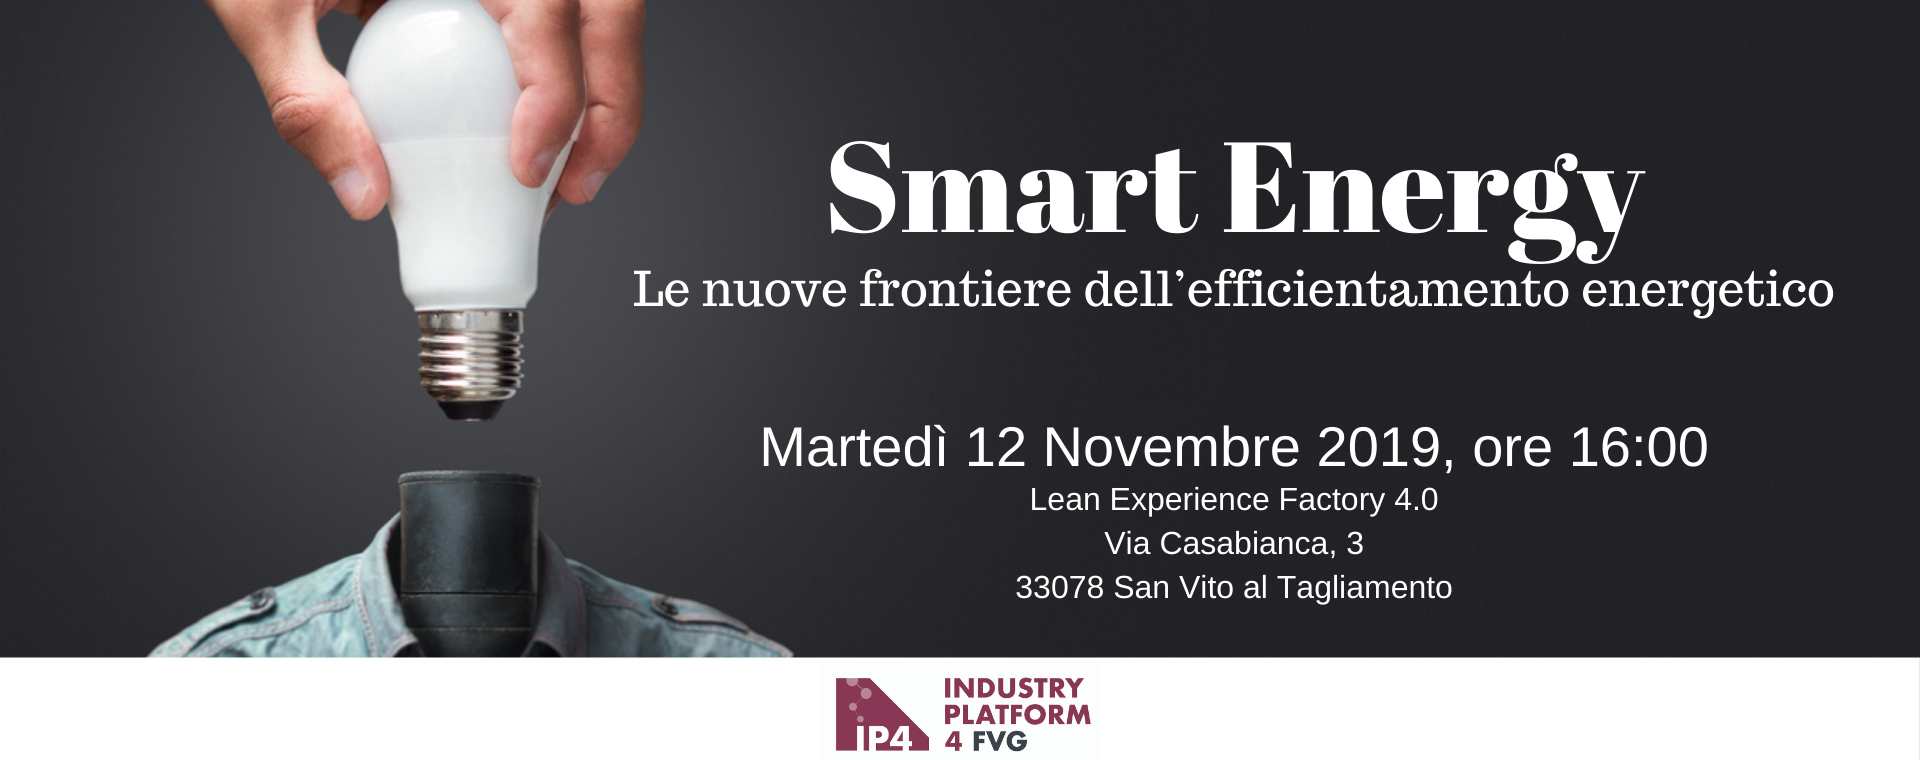 Smart Energy – Le nuove frontiere dell'efficientamento energetico